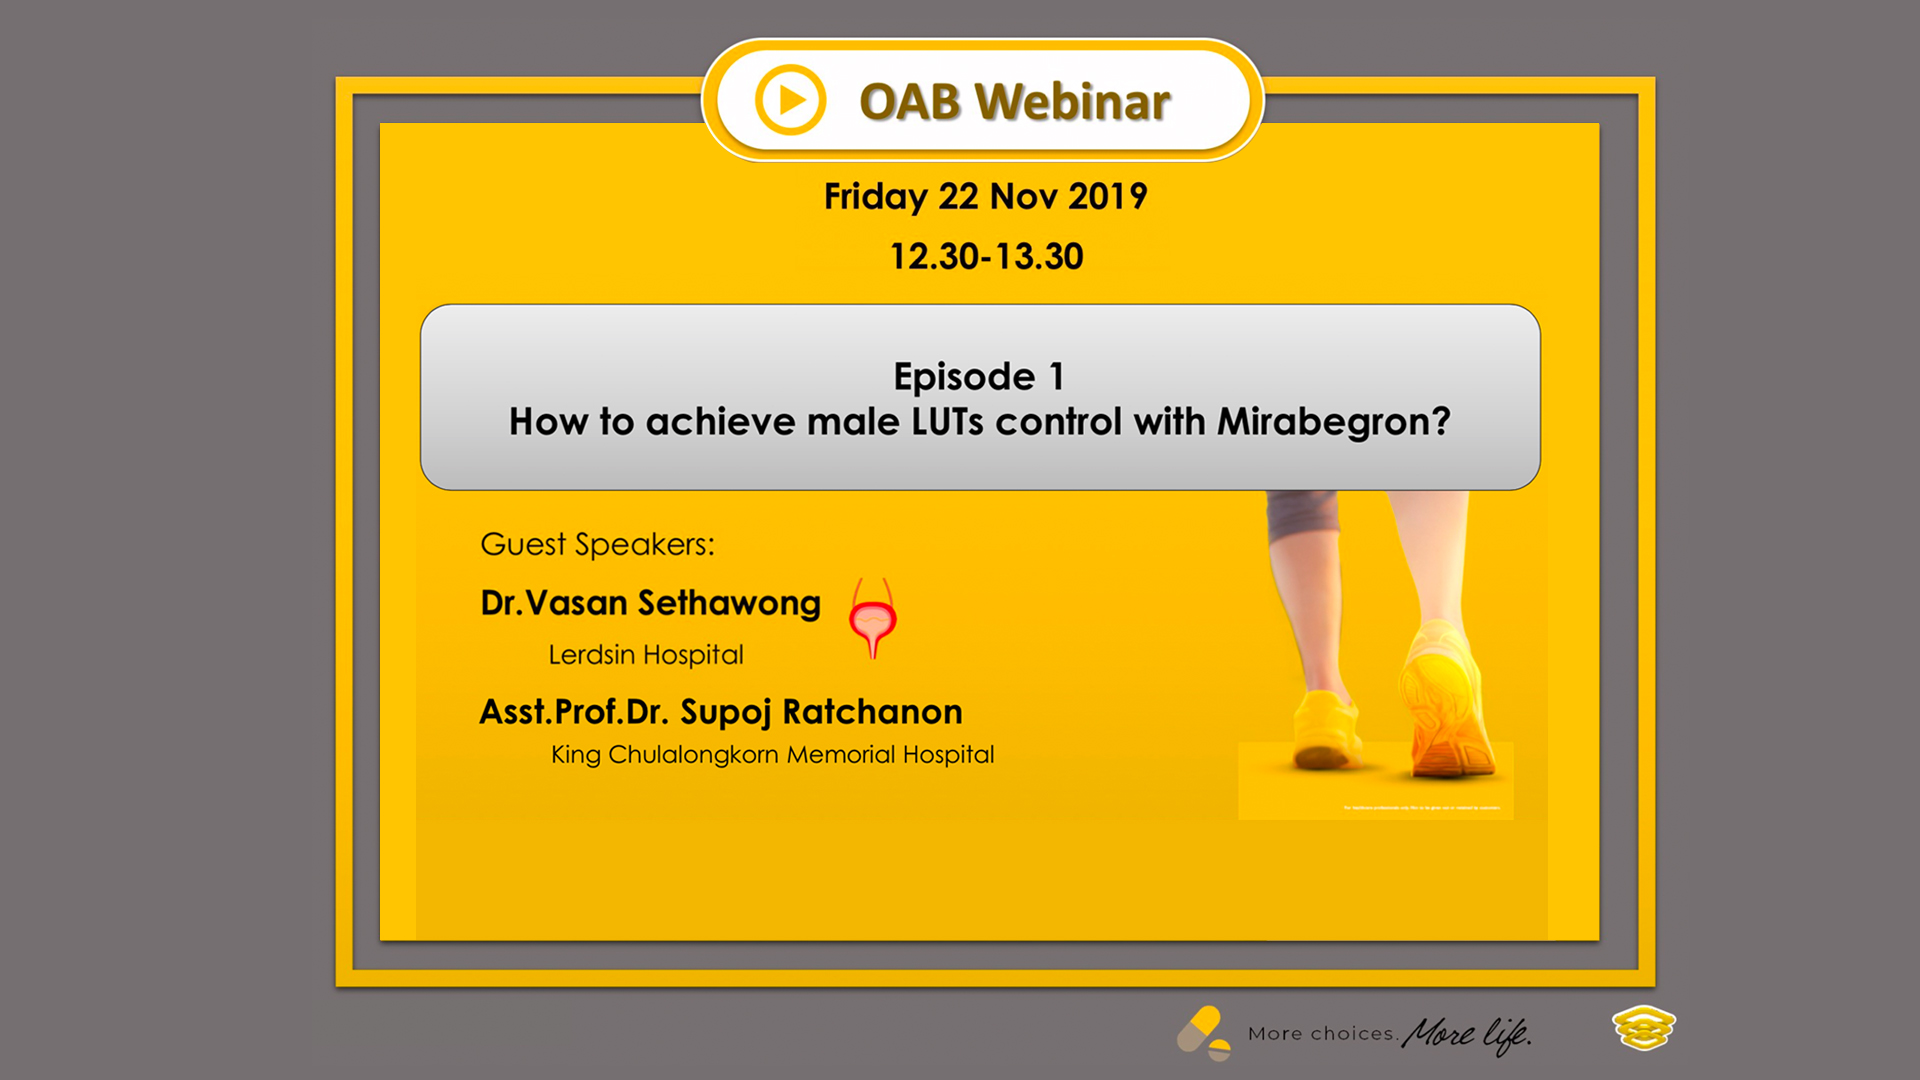 OAB Webinar | How to achieve male LUTs control with Mirabegron